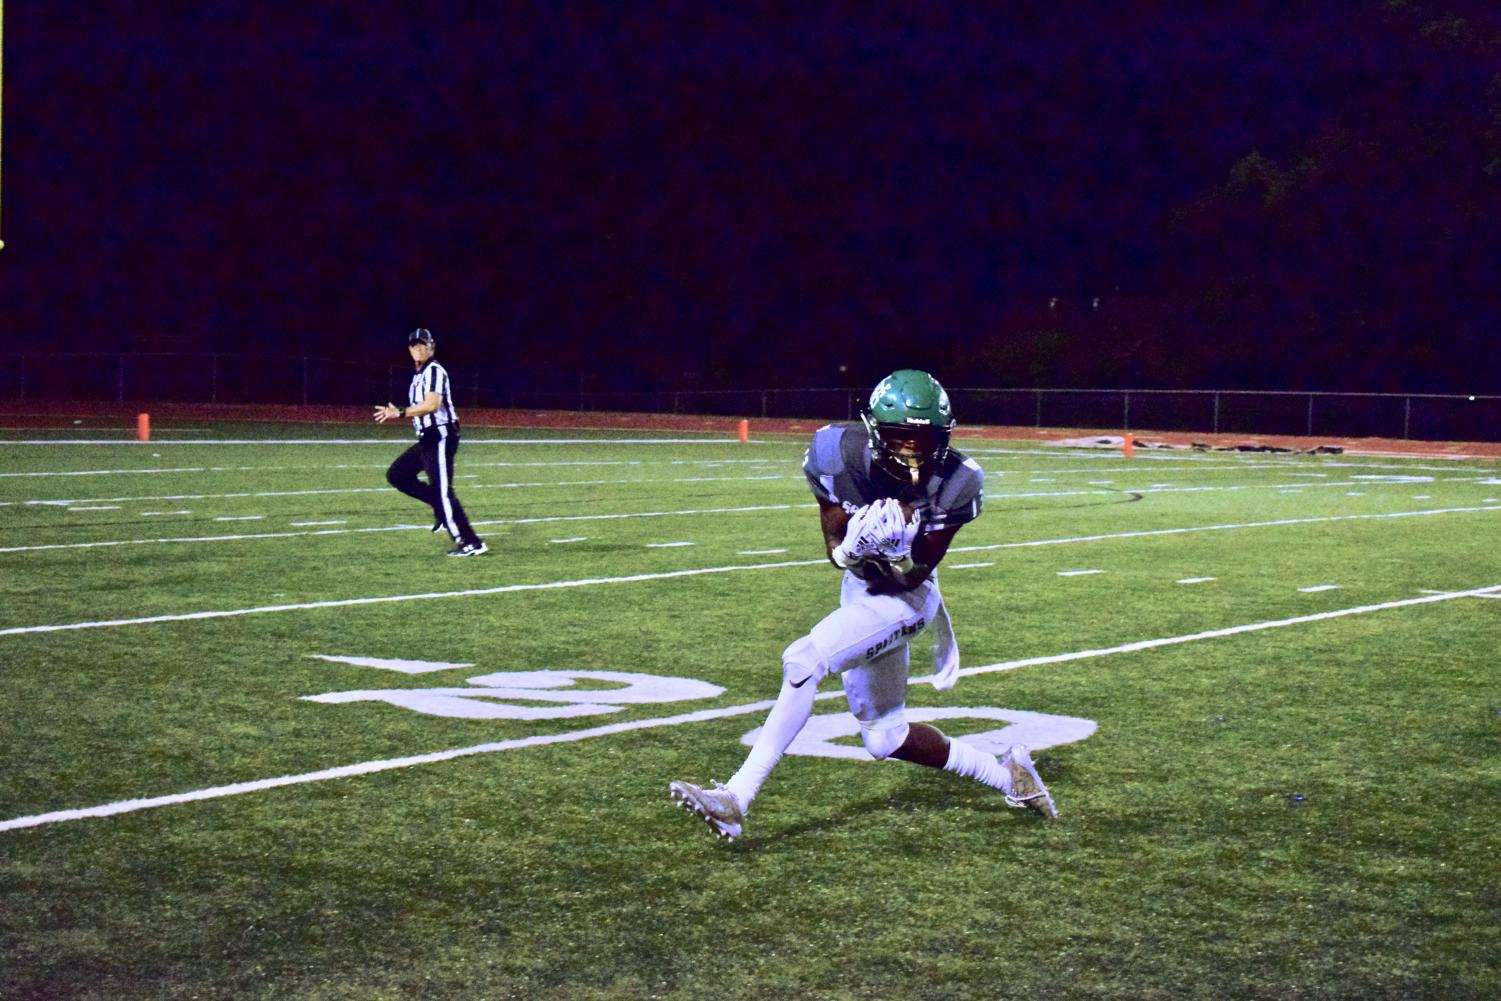 In the fourth quarter, Rod Farmer (12) hauls in a pass from quarterback Drew Lyons (12) on his way to the end zone. Farmer was tackled in the red zone and set Eli Neal (12) up for his second touchdown of the night.